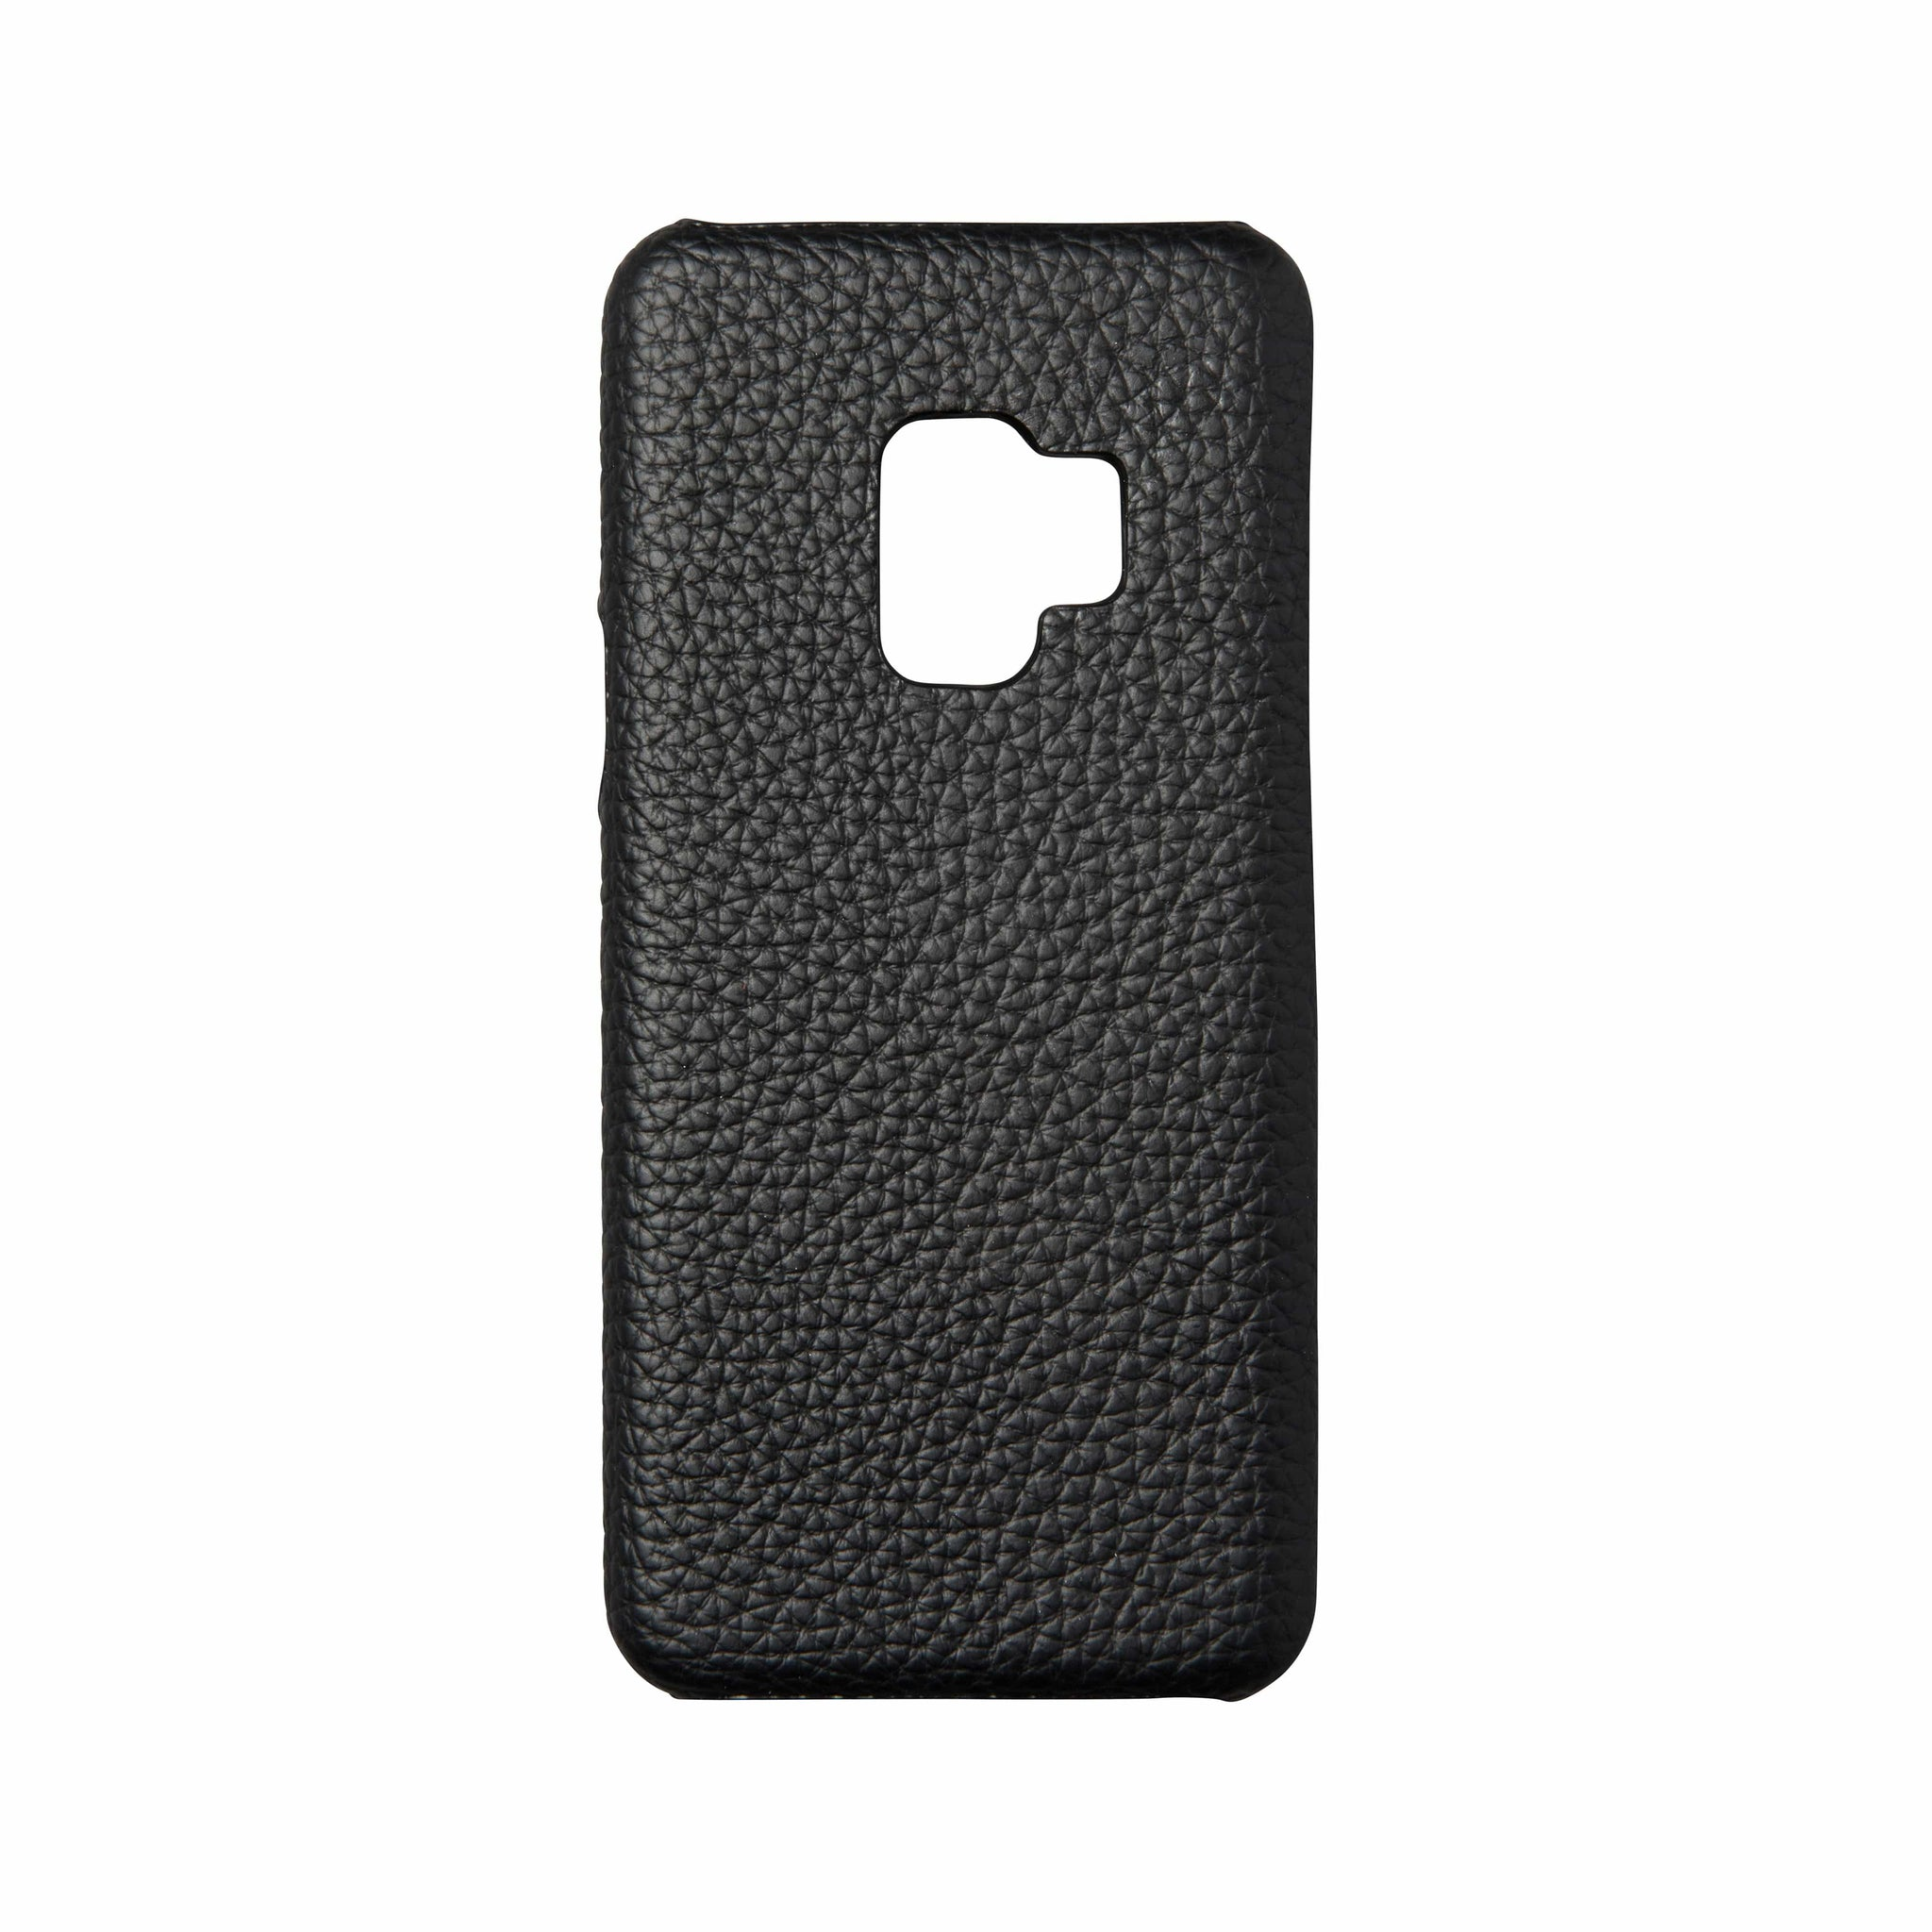 Jet Black Phone Case (Samsung 9)